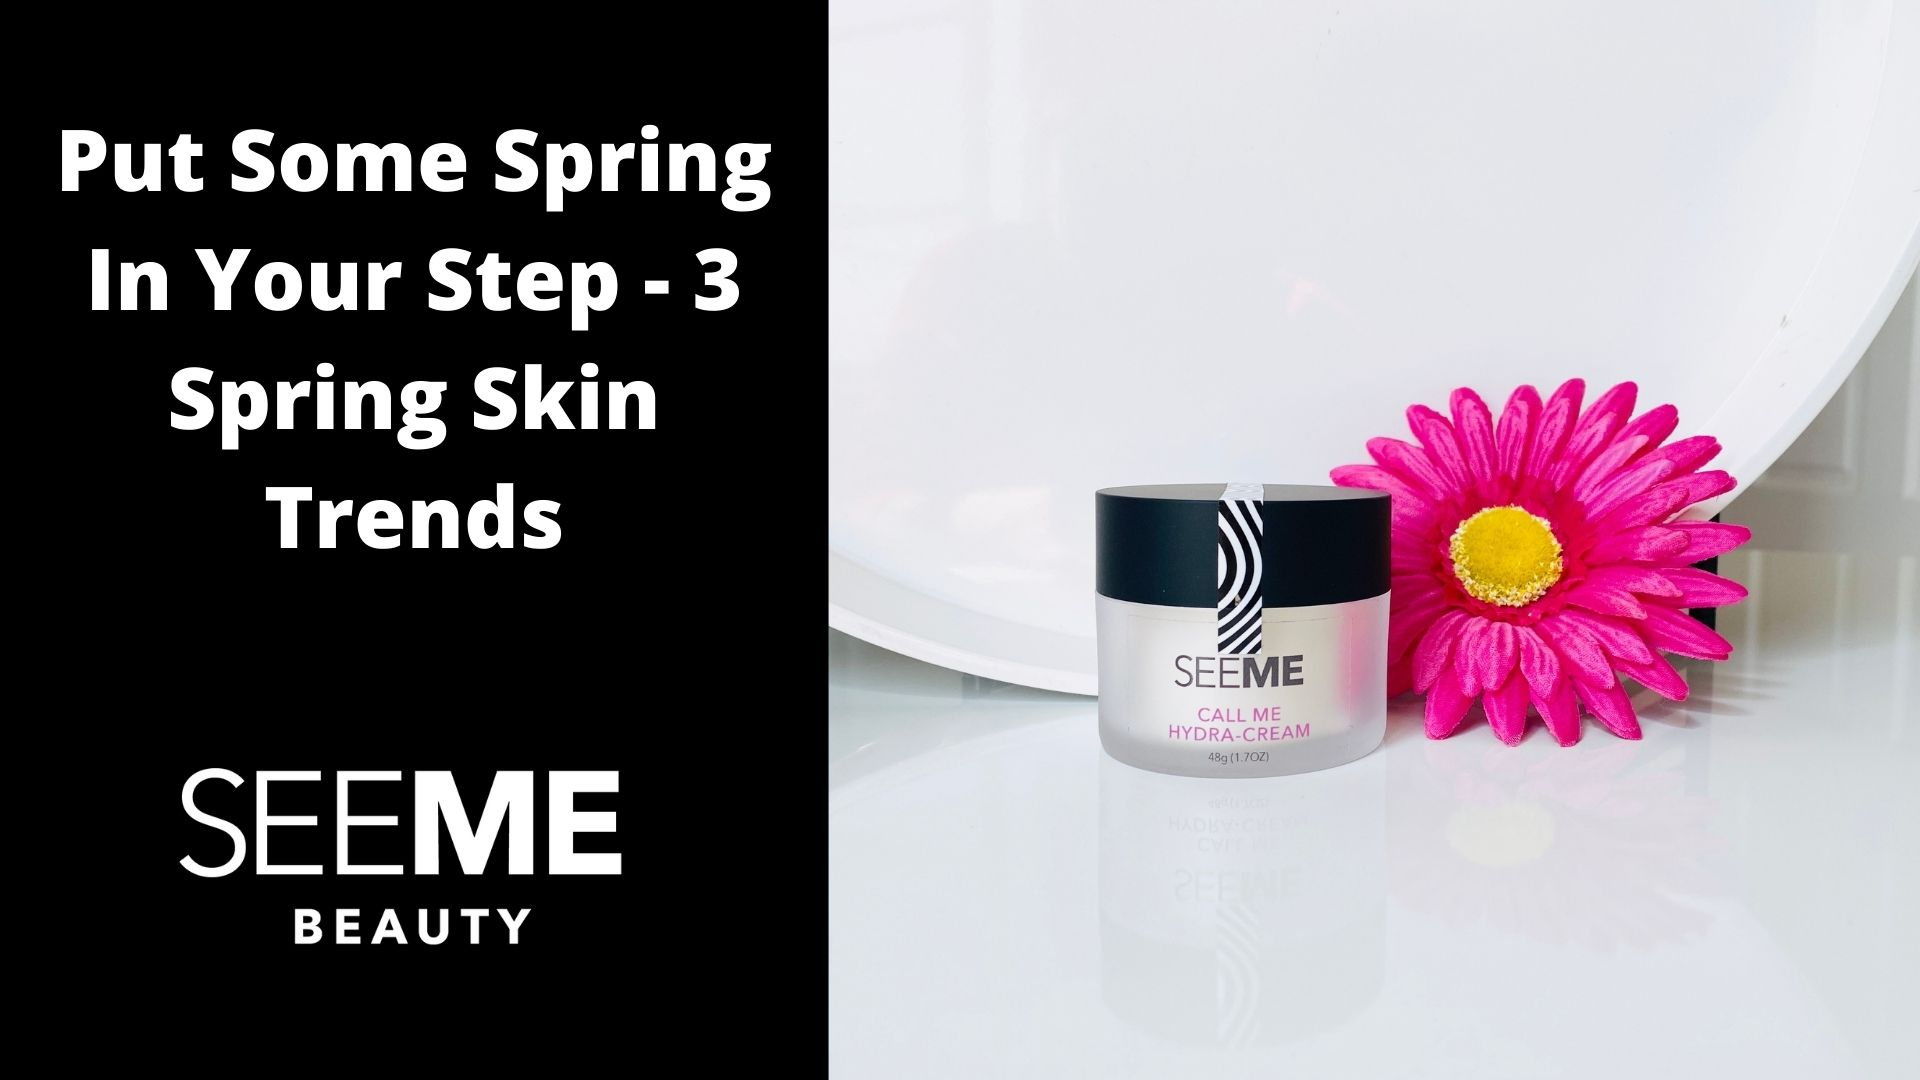 Put some spring in your step - three spring skin trends worth trying. A pink wild flower by the SeeMe Call Me Hydra-Cream jar